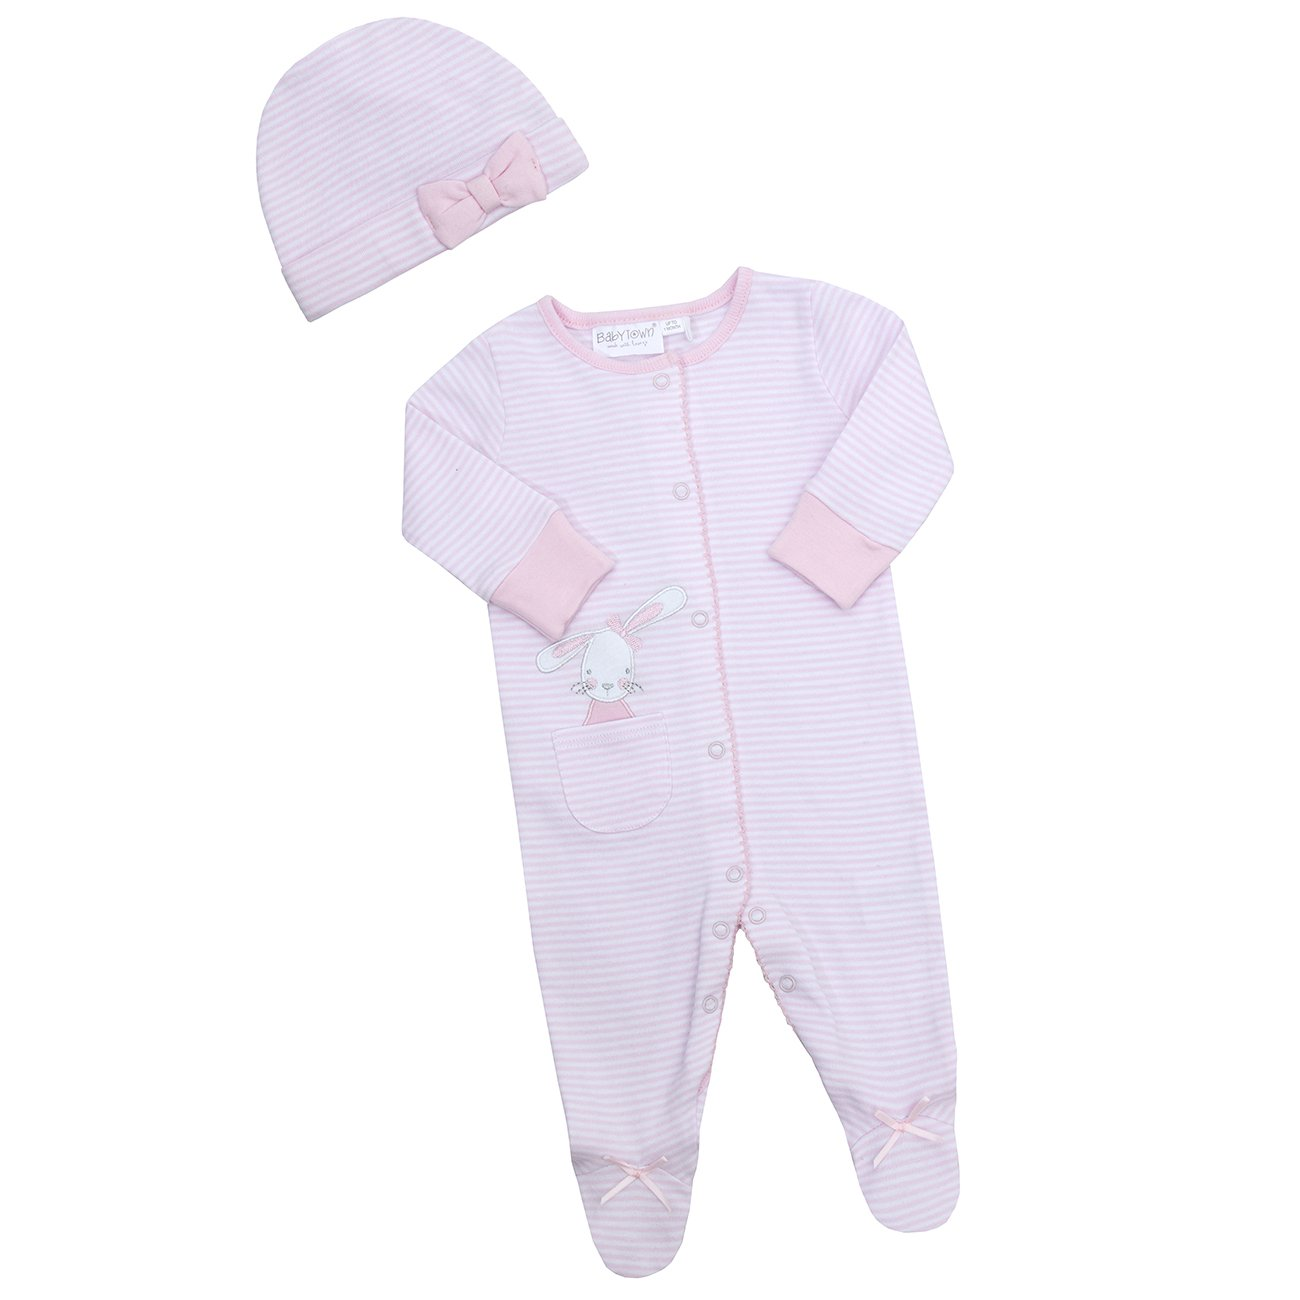 Babytown Baby Girls Bunny Sleepsuit Set 2 Piece Babygrow Cradle Cap Bundle